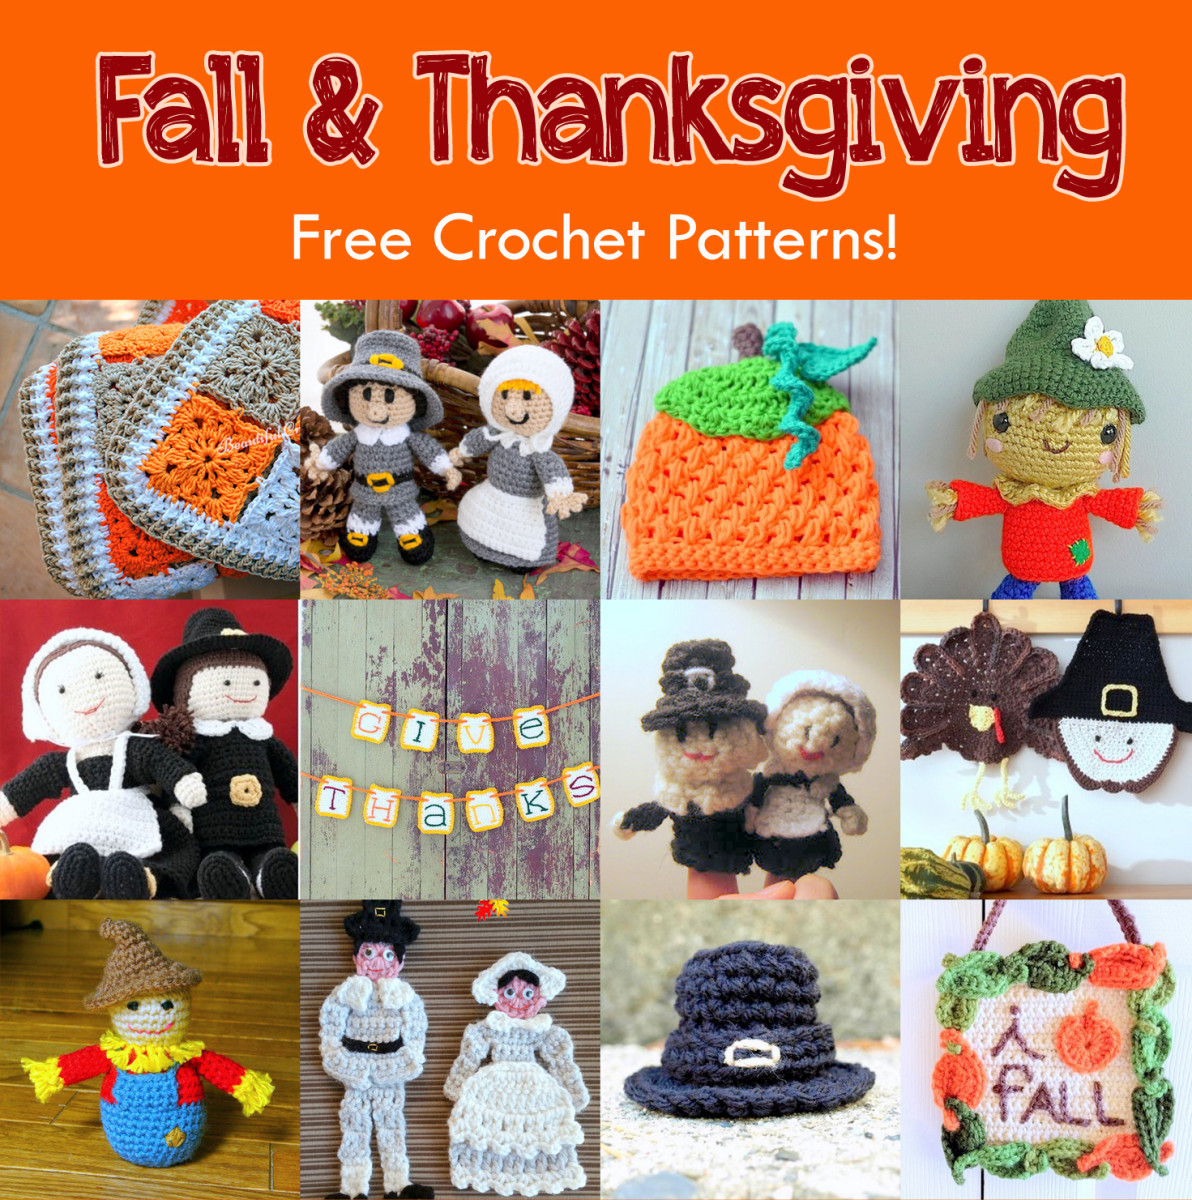 13 Free Fall & Thanksgiving Crochet Patterns